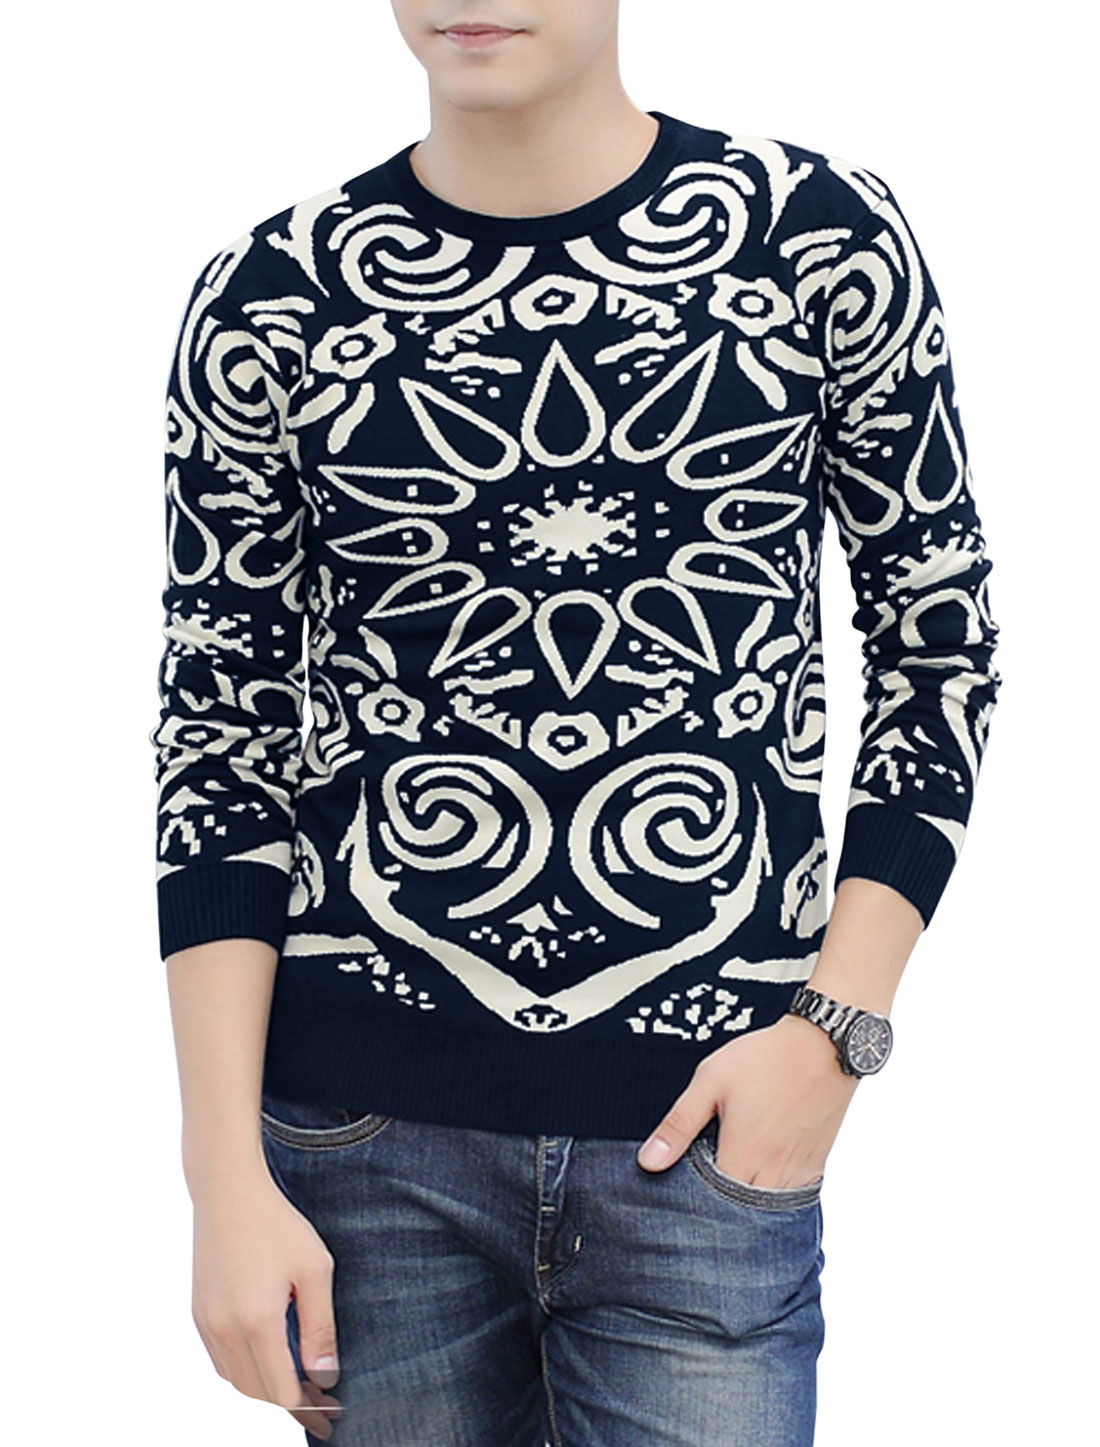 Men Round Neck Novelty Prints Long Sleeves Pullover Knit Top Navy Blue Beige M